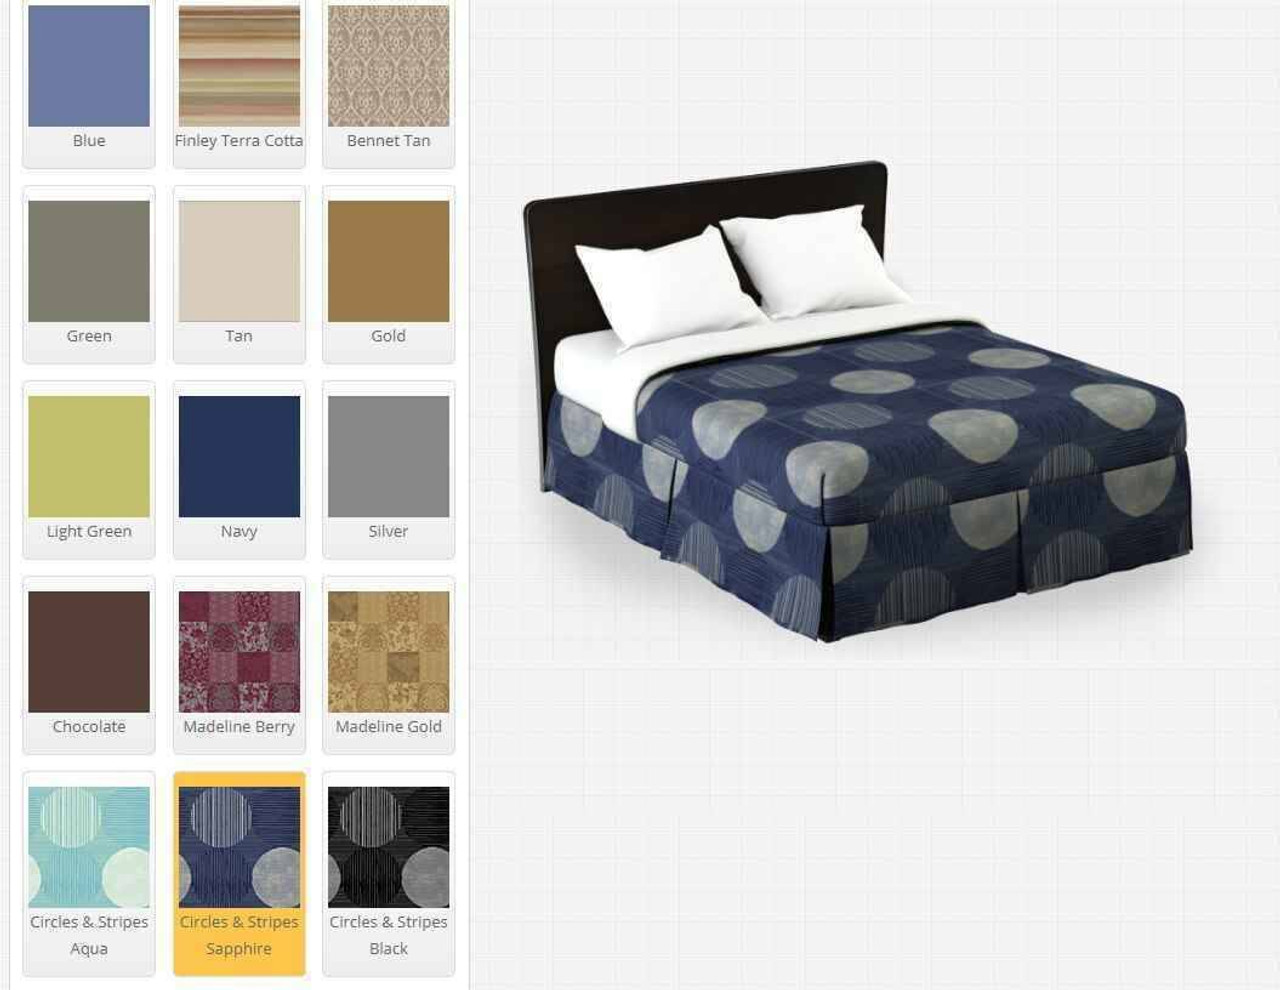 Martex RX Bedding by Westpoint Hospitality Martex Rx Bedding or Bed Skirt - All Styles